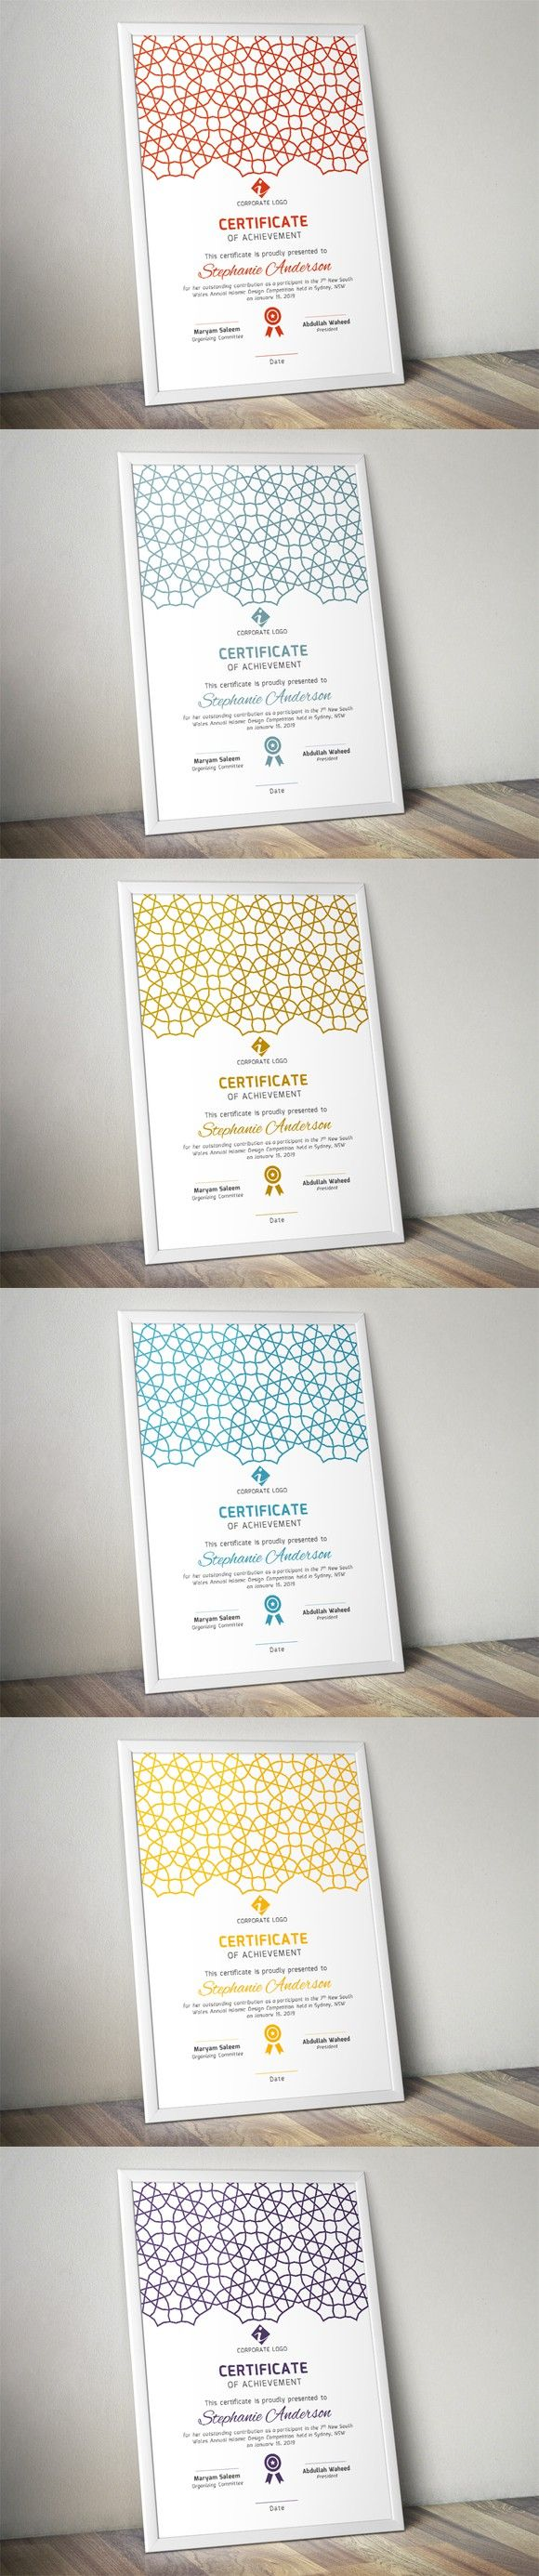 Islamic certificate template (docx). Stationery Templates. $5.00